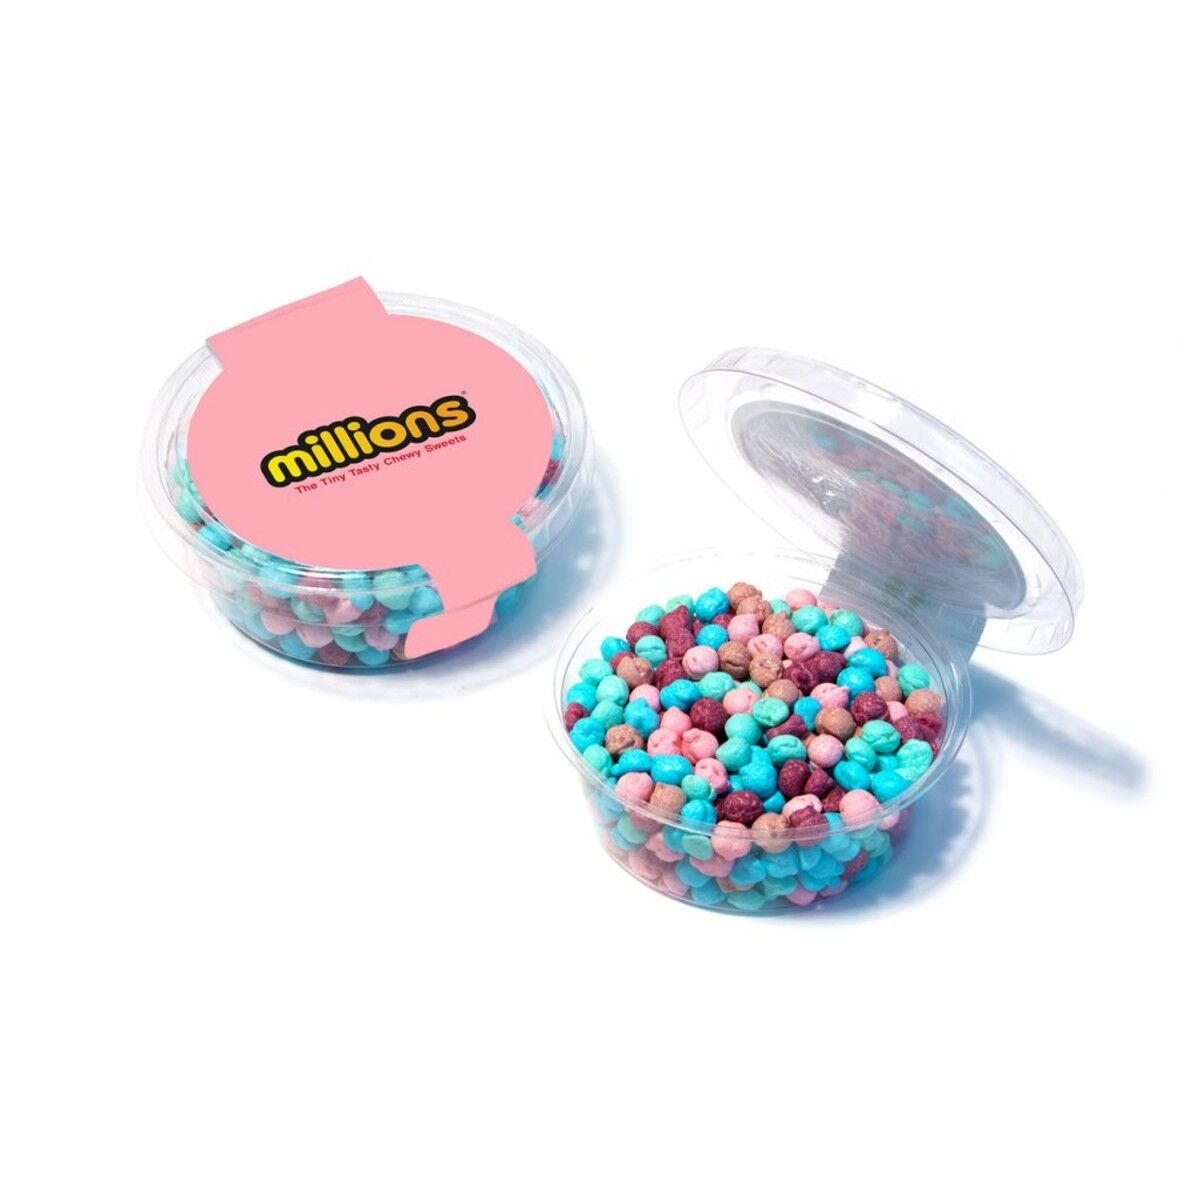 Midi Confectionery Pot filled with Millions